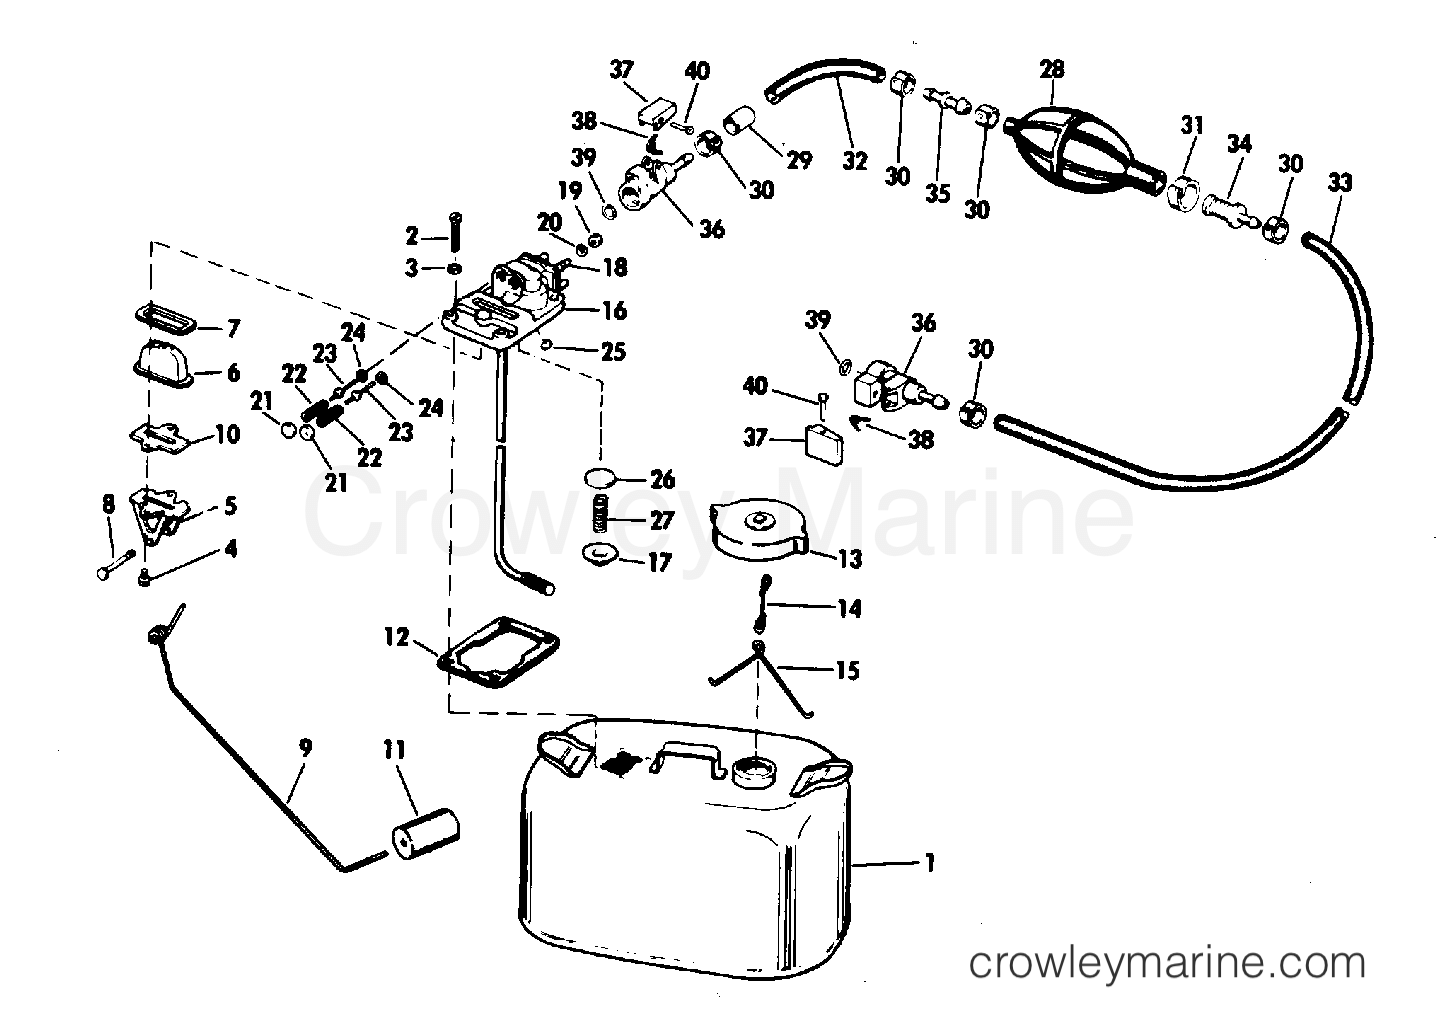 Wiring Diagrams For 1986 115 Johnson Outboard   Wiring Diagram